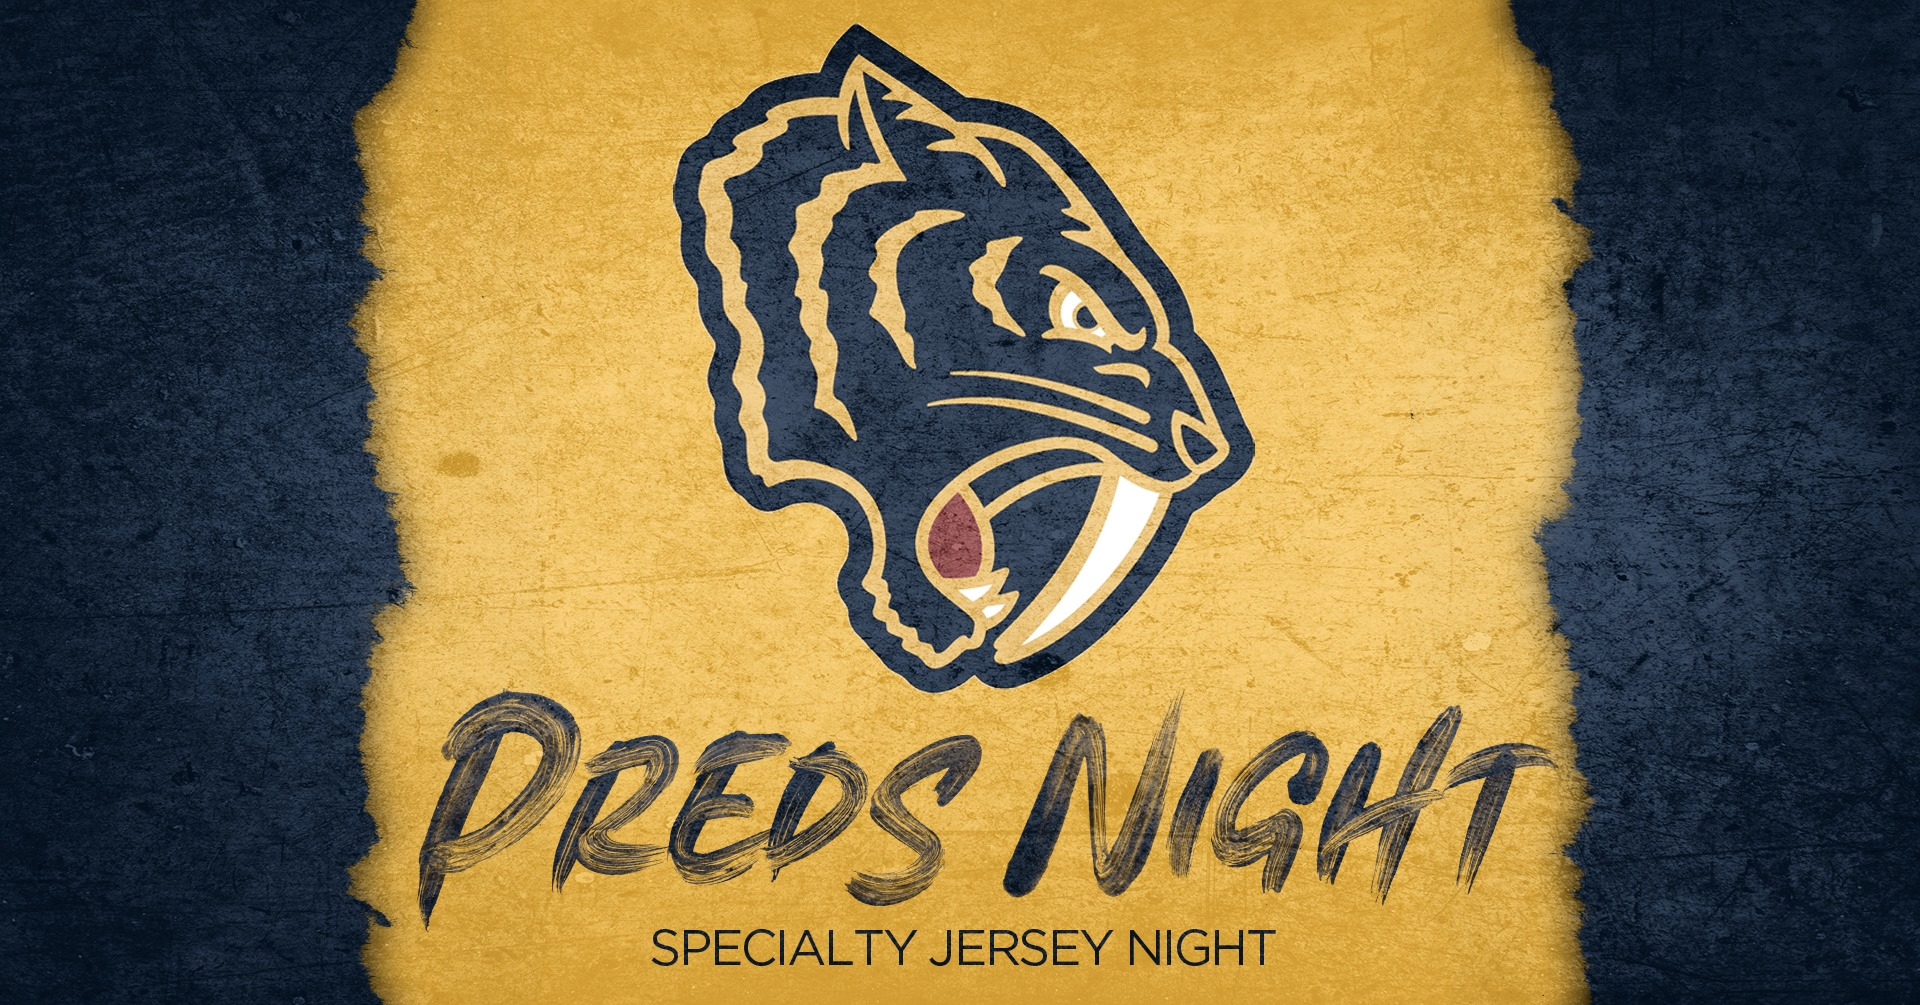 Knoxville Ice Bears Predators Night